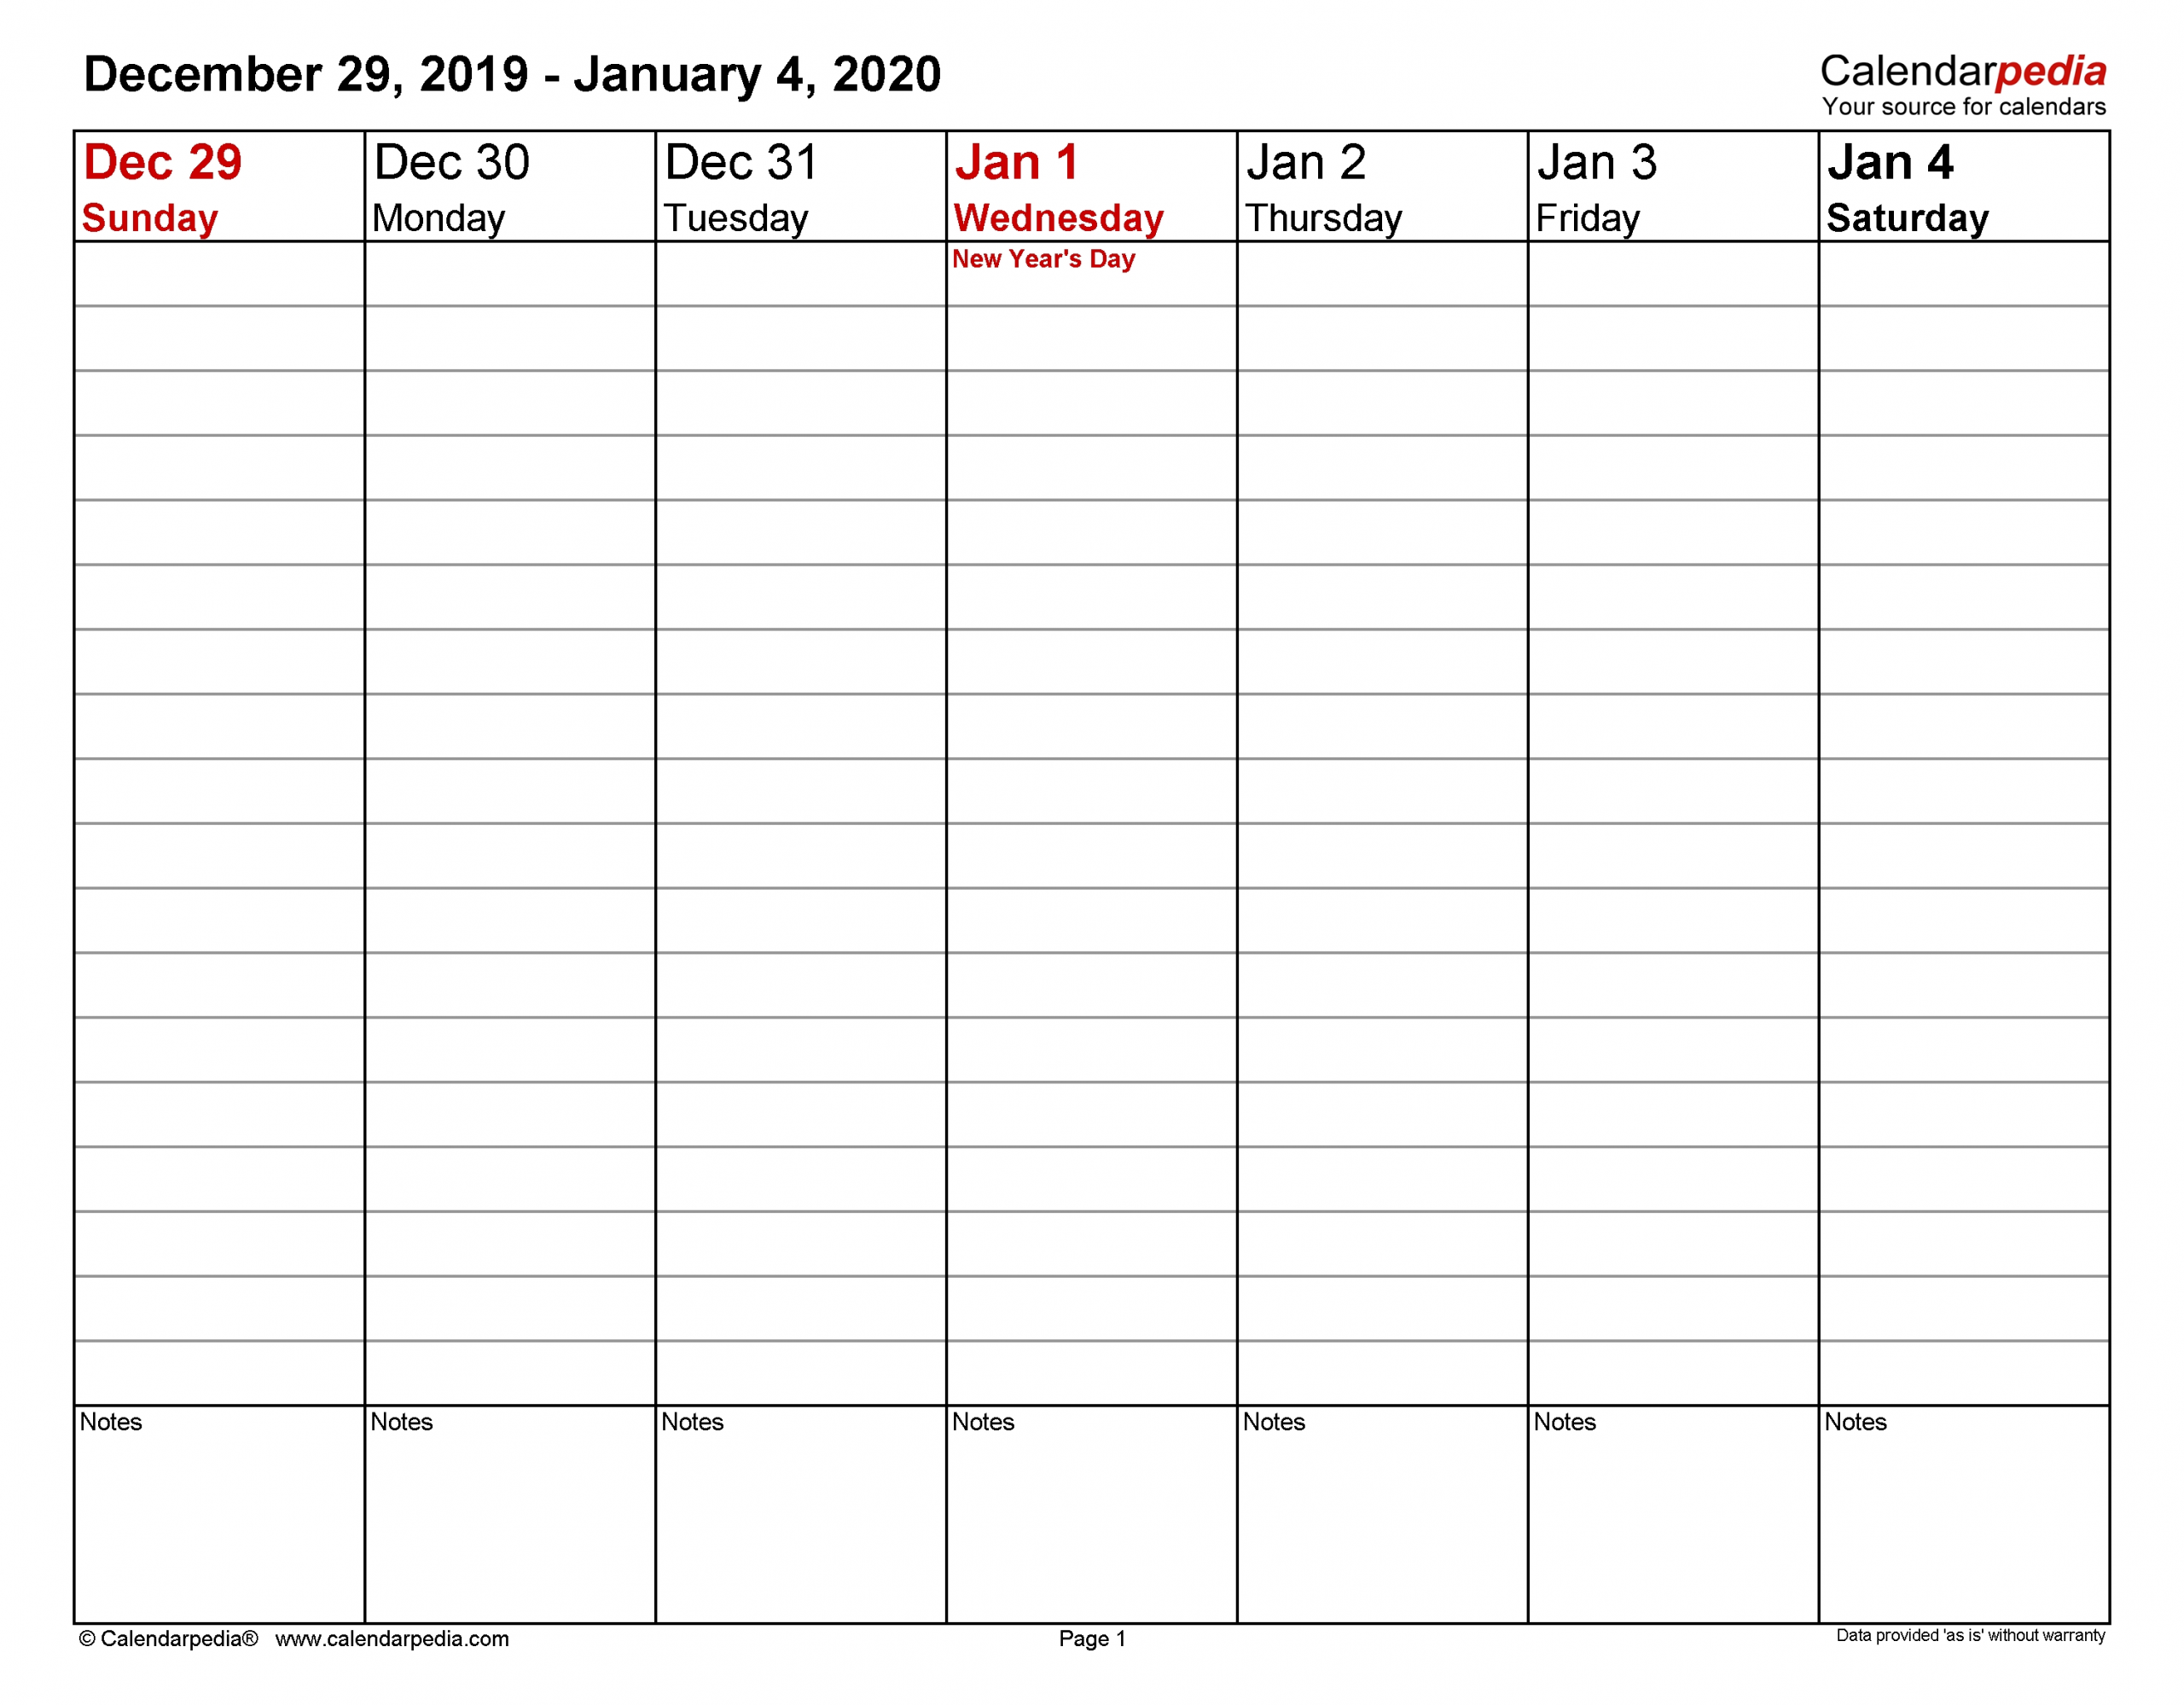 Weekly Calendars 2020 For Pdf - 12 Free Printable Templates intended for 2019 Printable Weekly Nfl Schedule Pdf